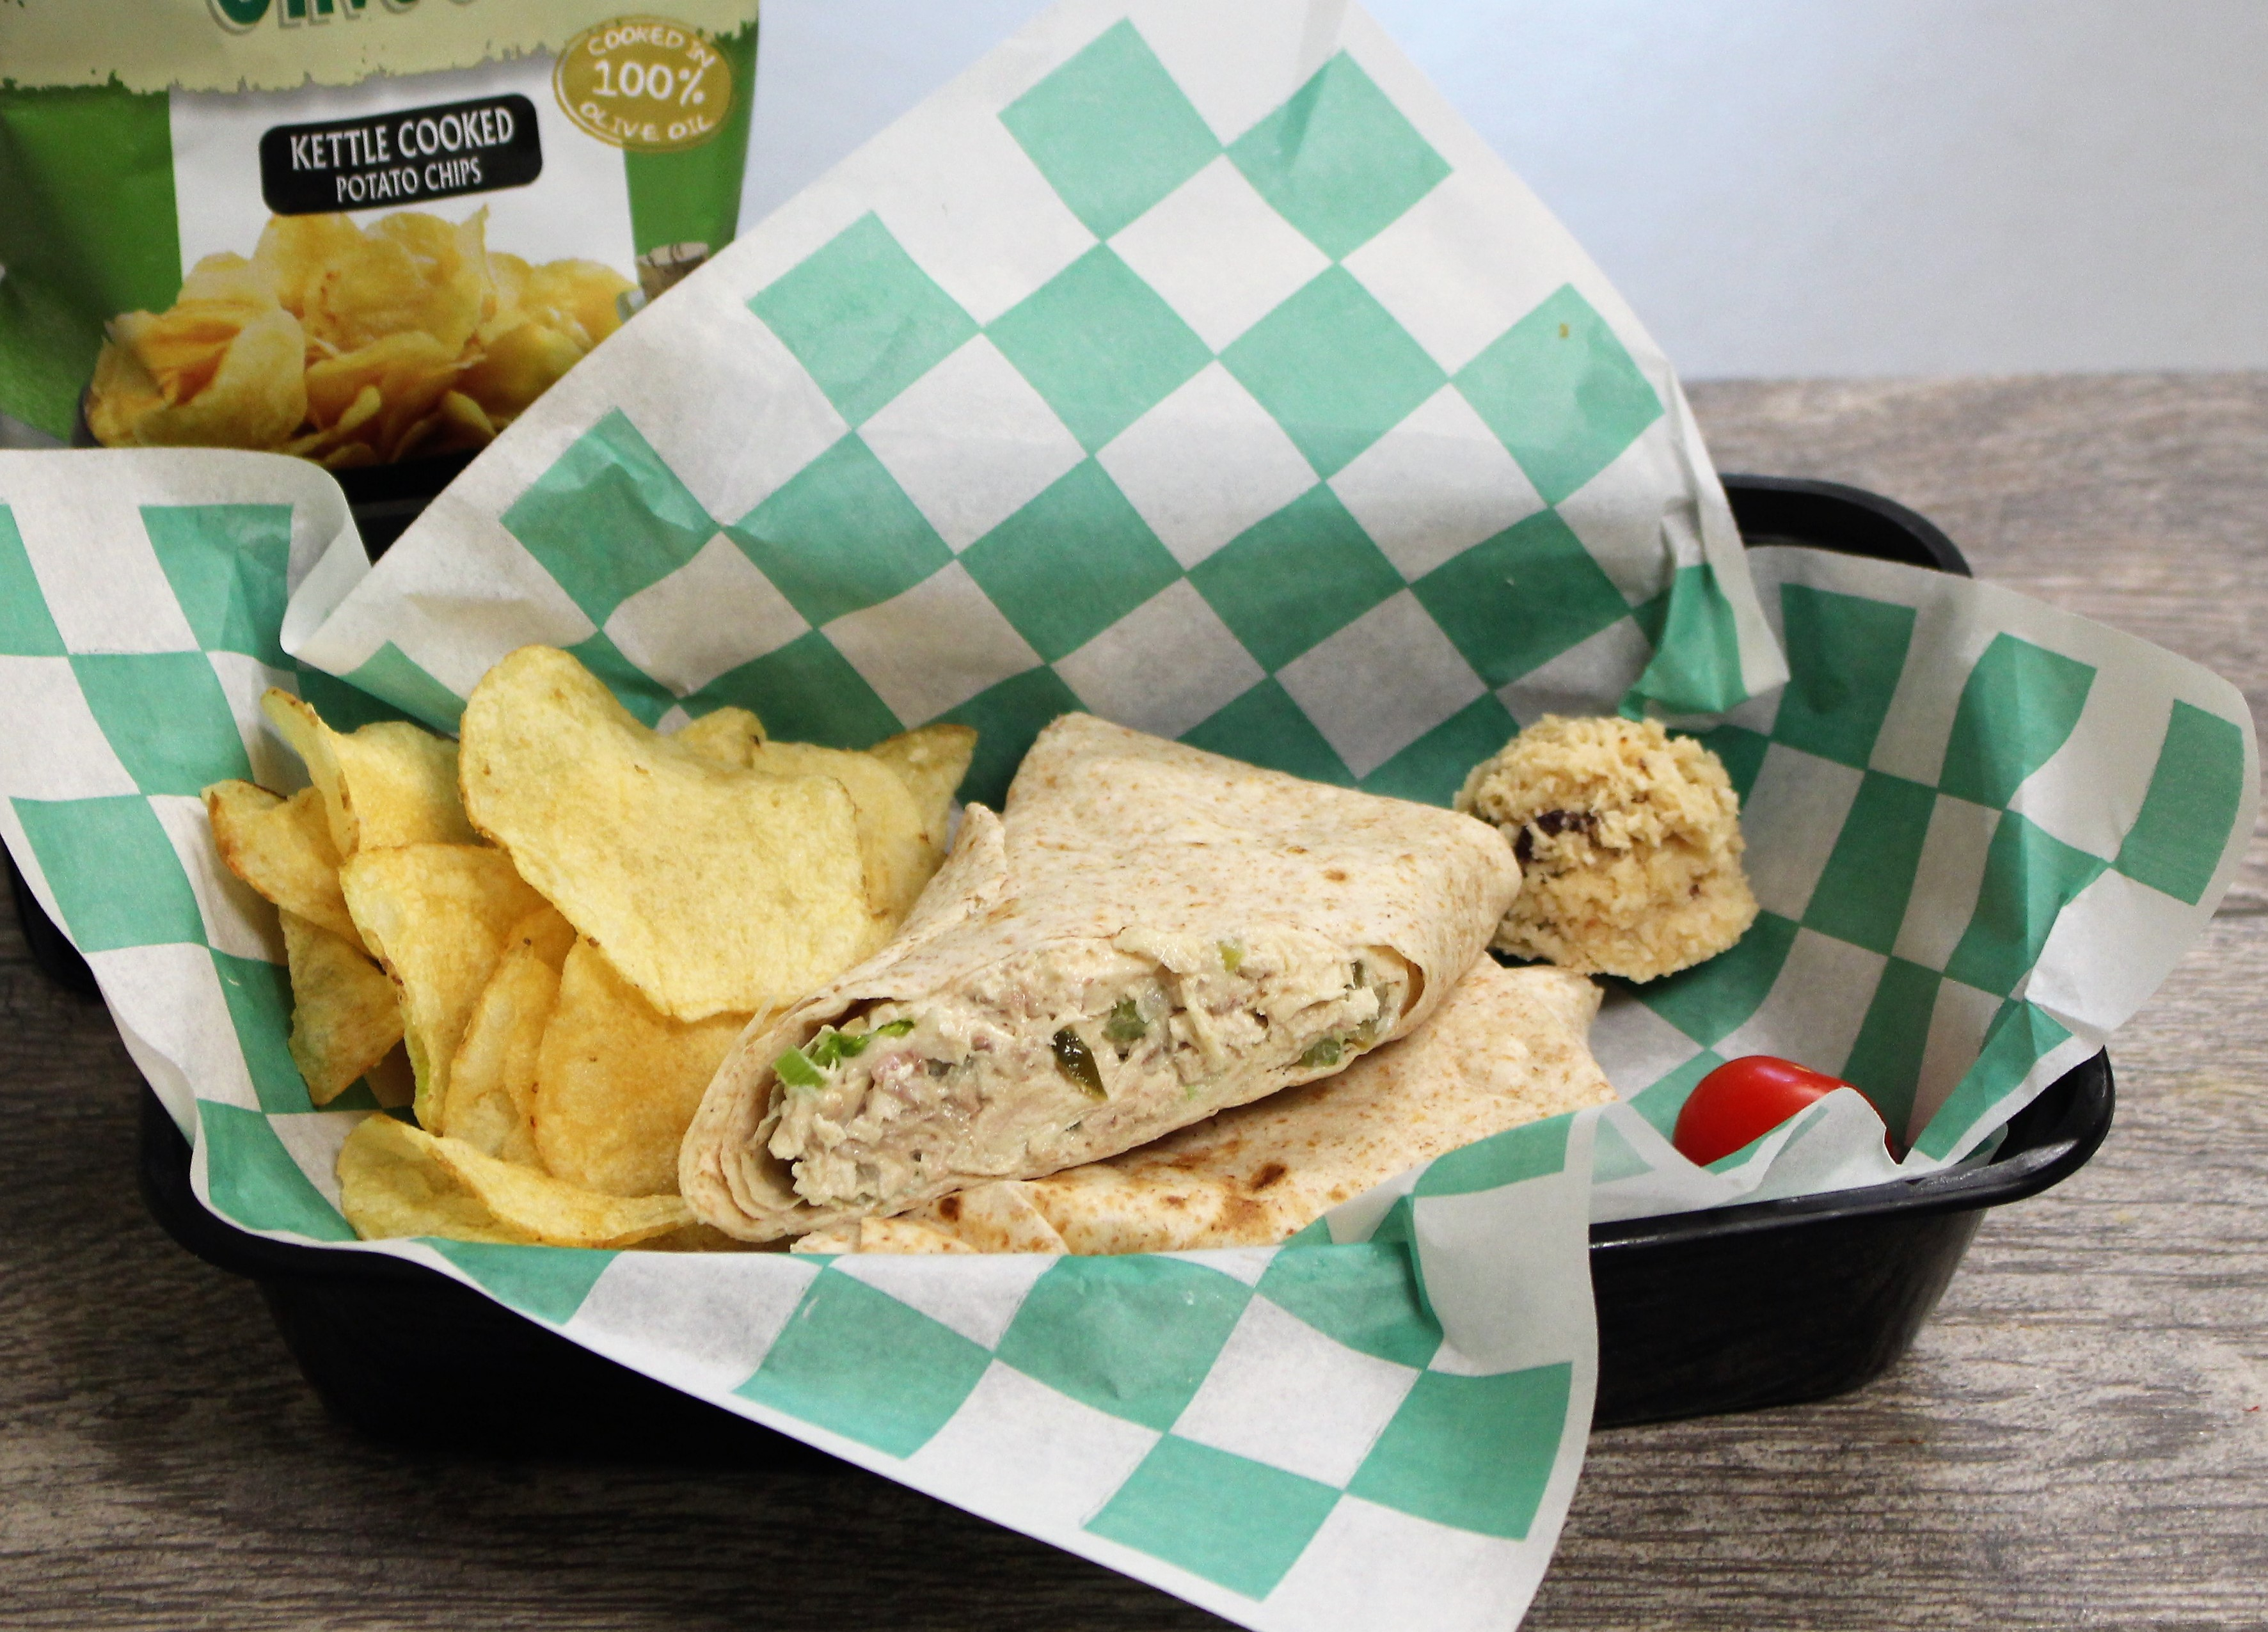 Mom s chicken salad wrap with chips cuisine for healing for Cuisine for healing